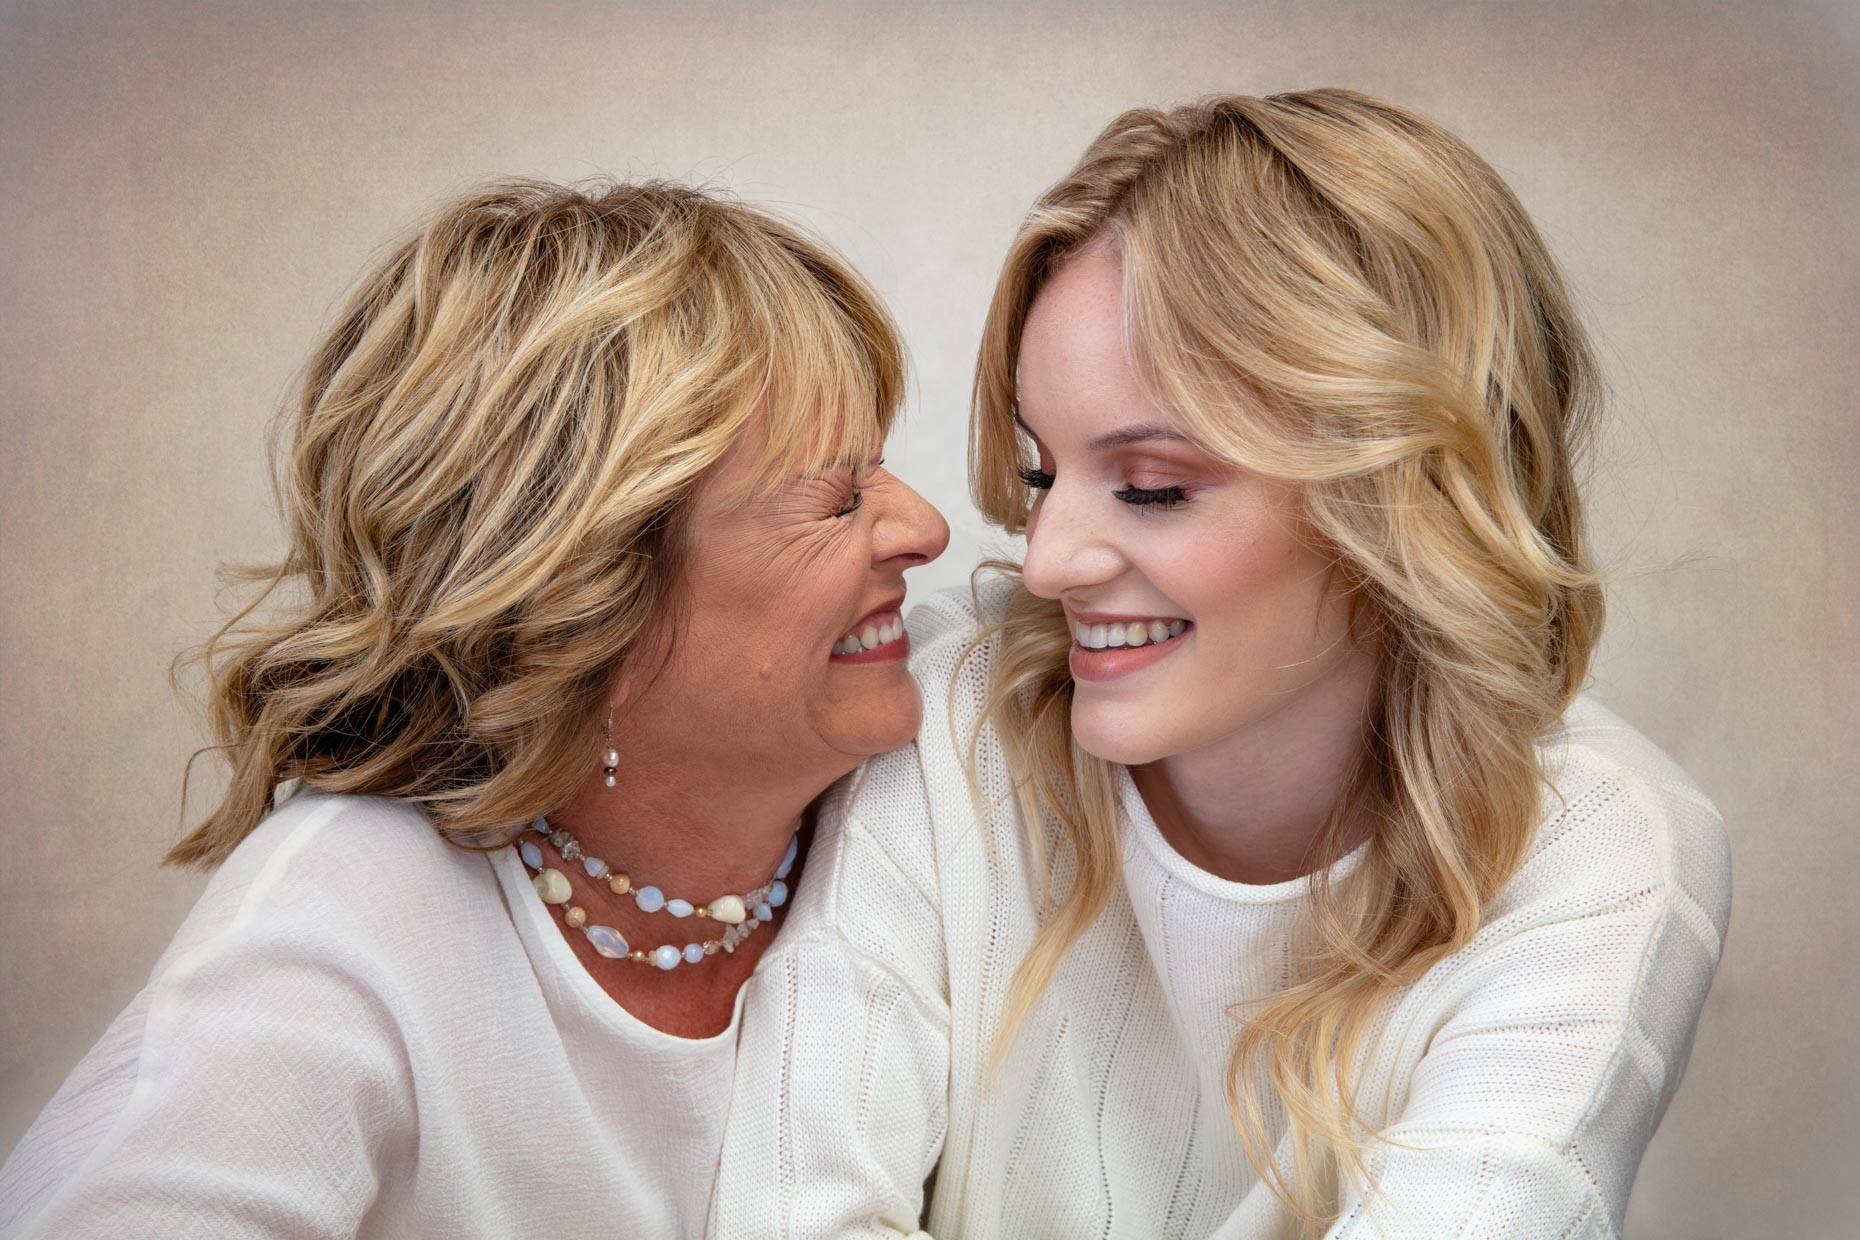 Fran (Mom) and Katie (daughter) Hardman, Beauty Portrait.